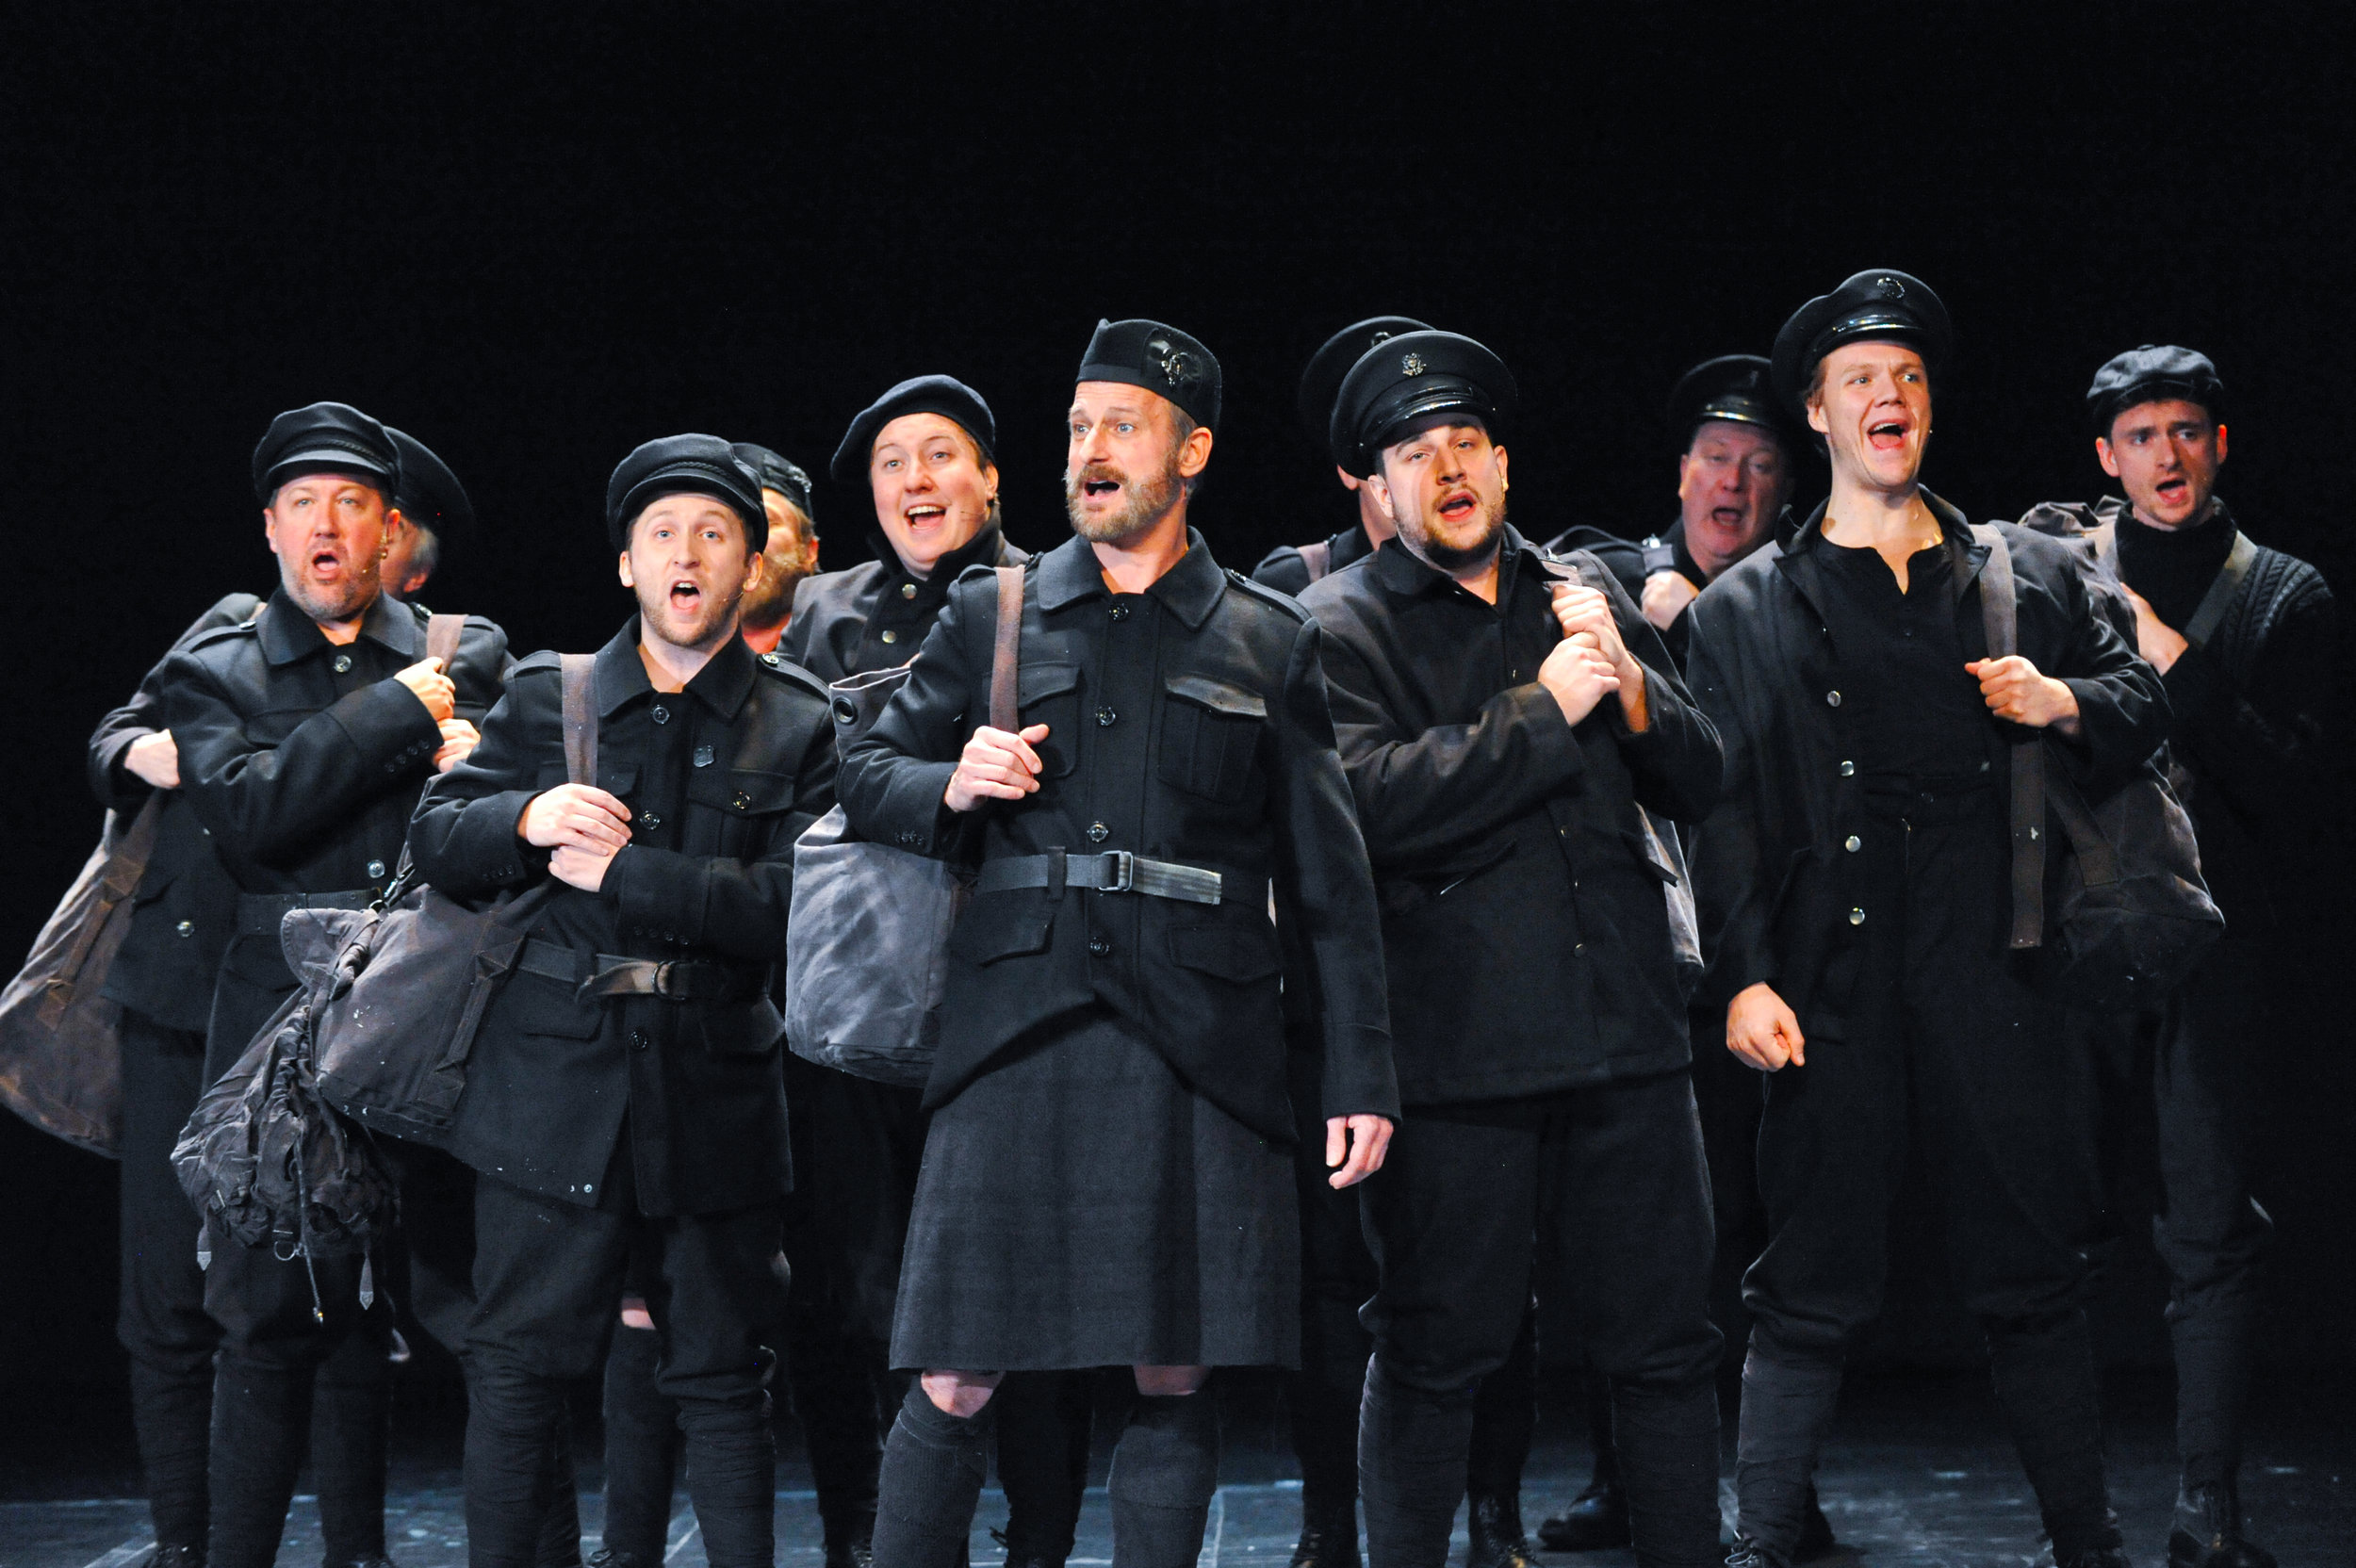 ALL IS CALM: THE CHRISTMAS TRUCE 0F 1914, A co-production of Cantus, Theater Latté Da, and Hennepin Theatre Trust, Pantages Theatre, 2016